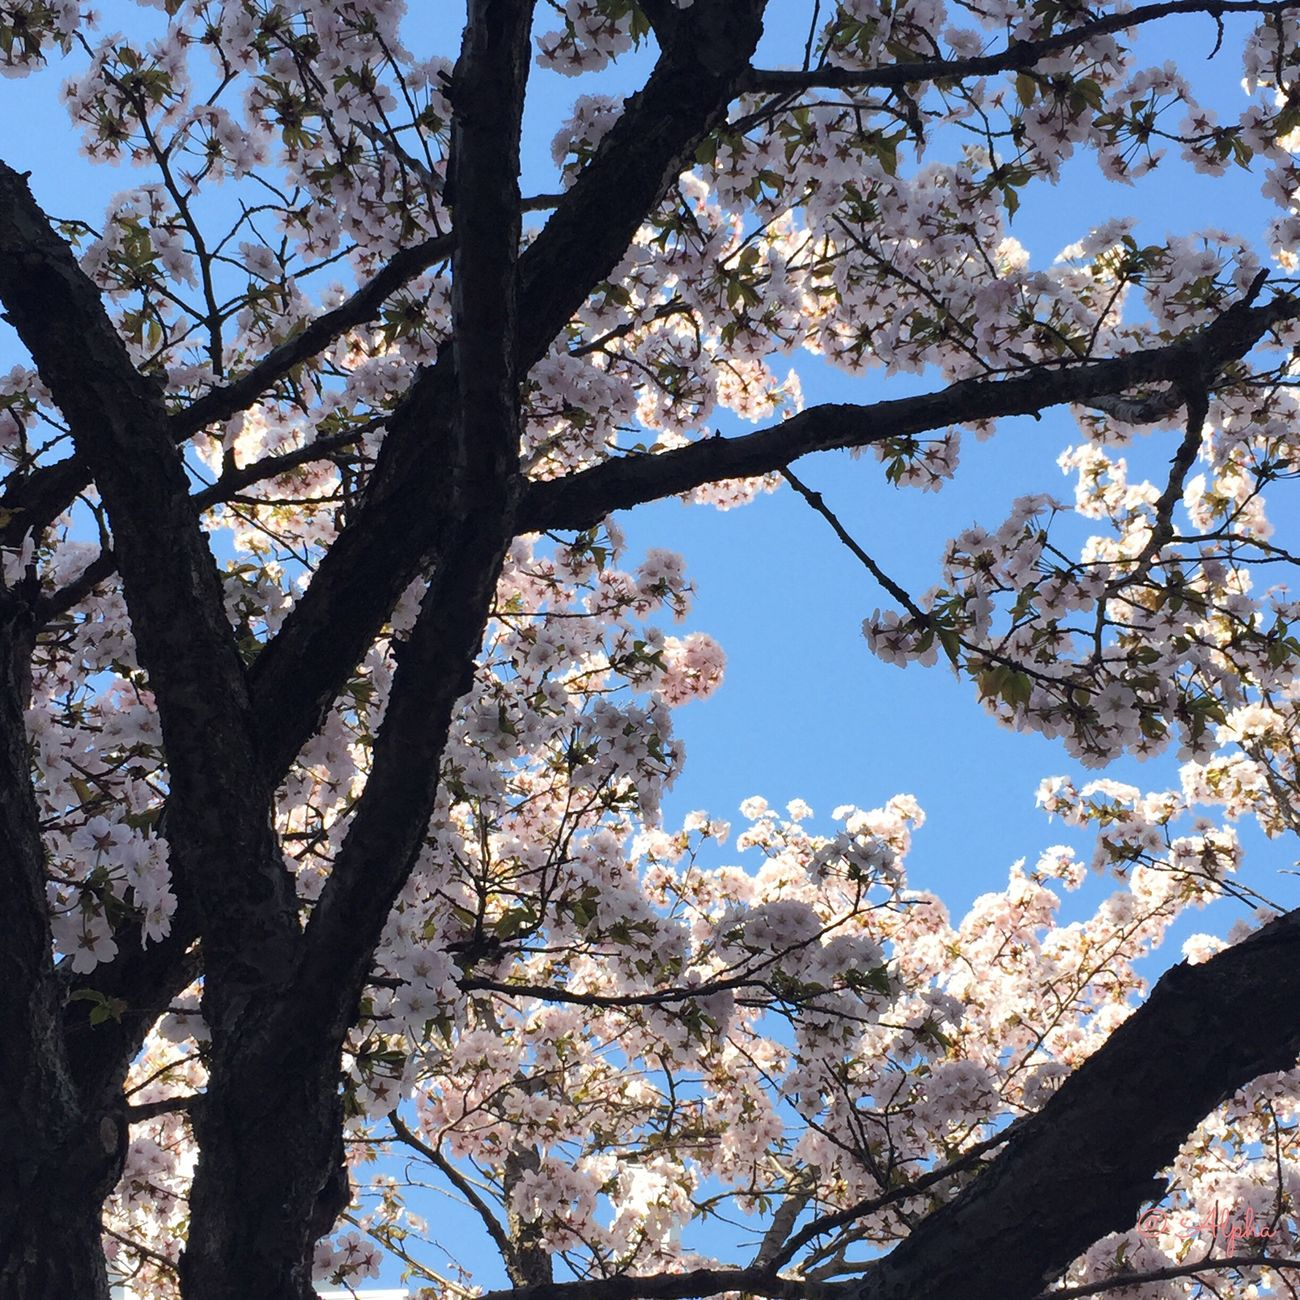 Springtime Cherryblossom Blue Sky Beauty In Nature Cherry Tree White Color Springflowers Nature_collection Blossom Flowerlovers Flower Tree Flowers_collection Treescollection EyeEmFlower EyeEm Nature Lover Flower Collection Treeflower Spring Photography Blooming